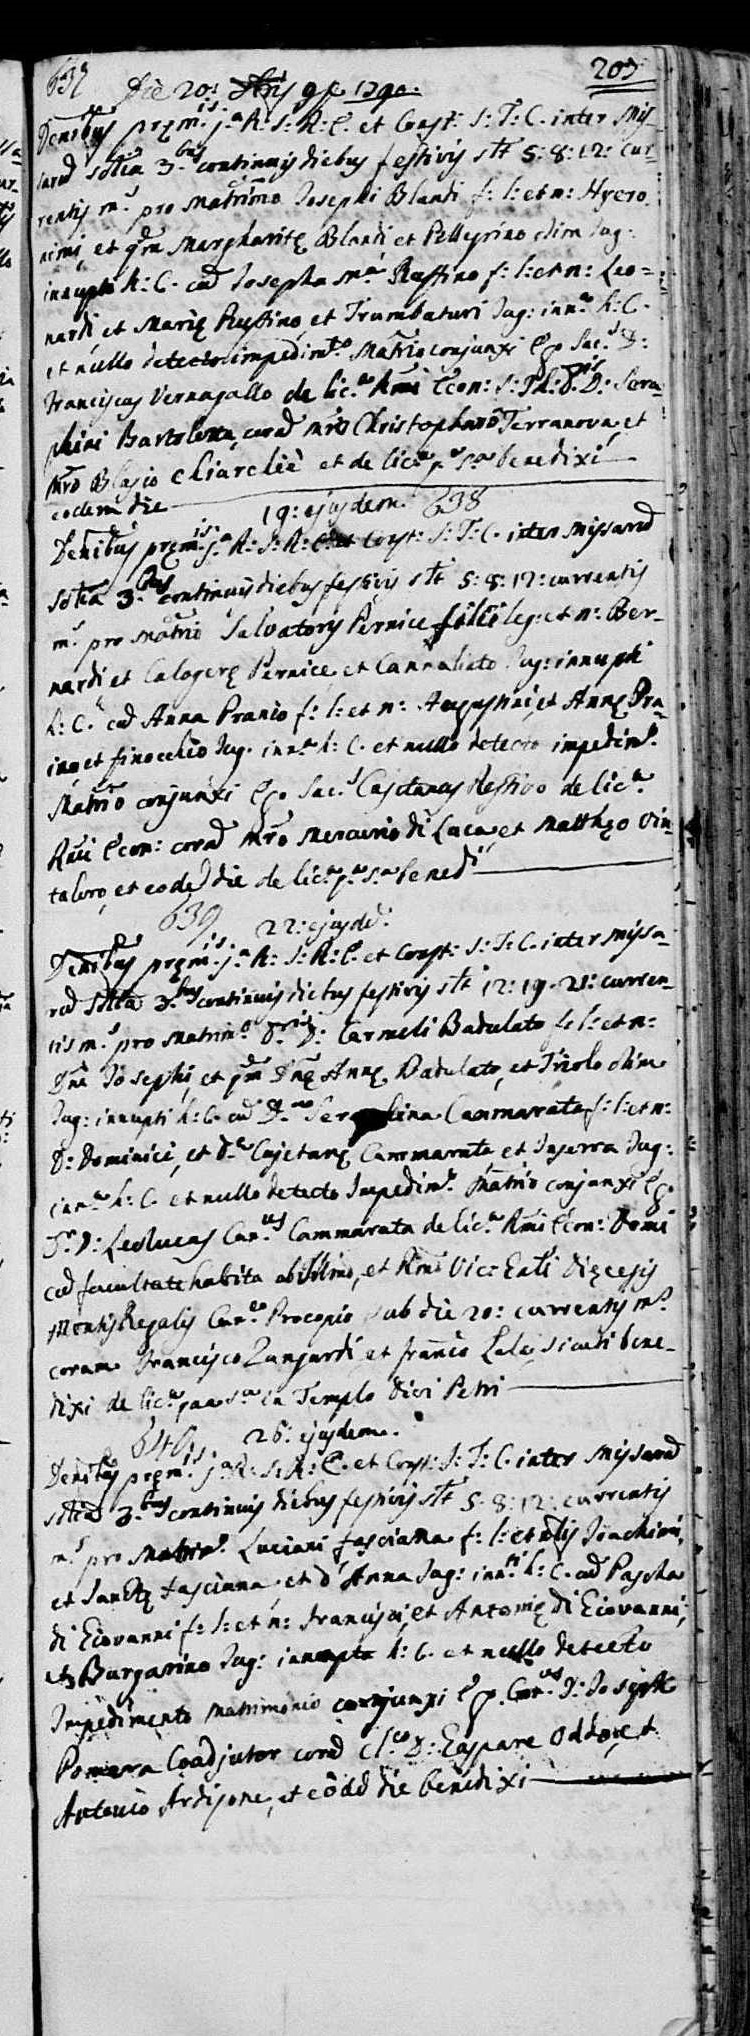 Marriage Record of Luciano Fasciana and Pasqua DiGiovanni.jpg